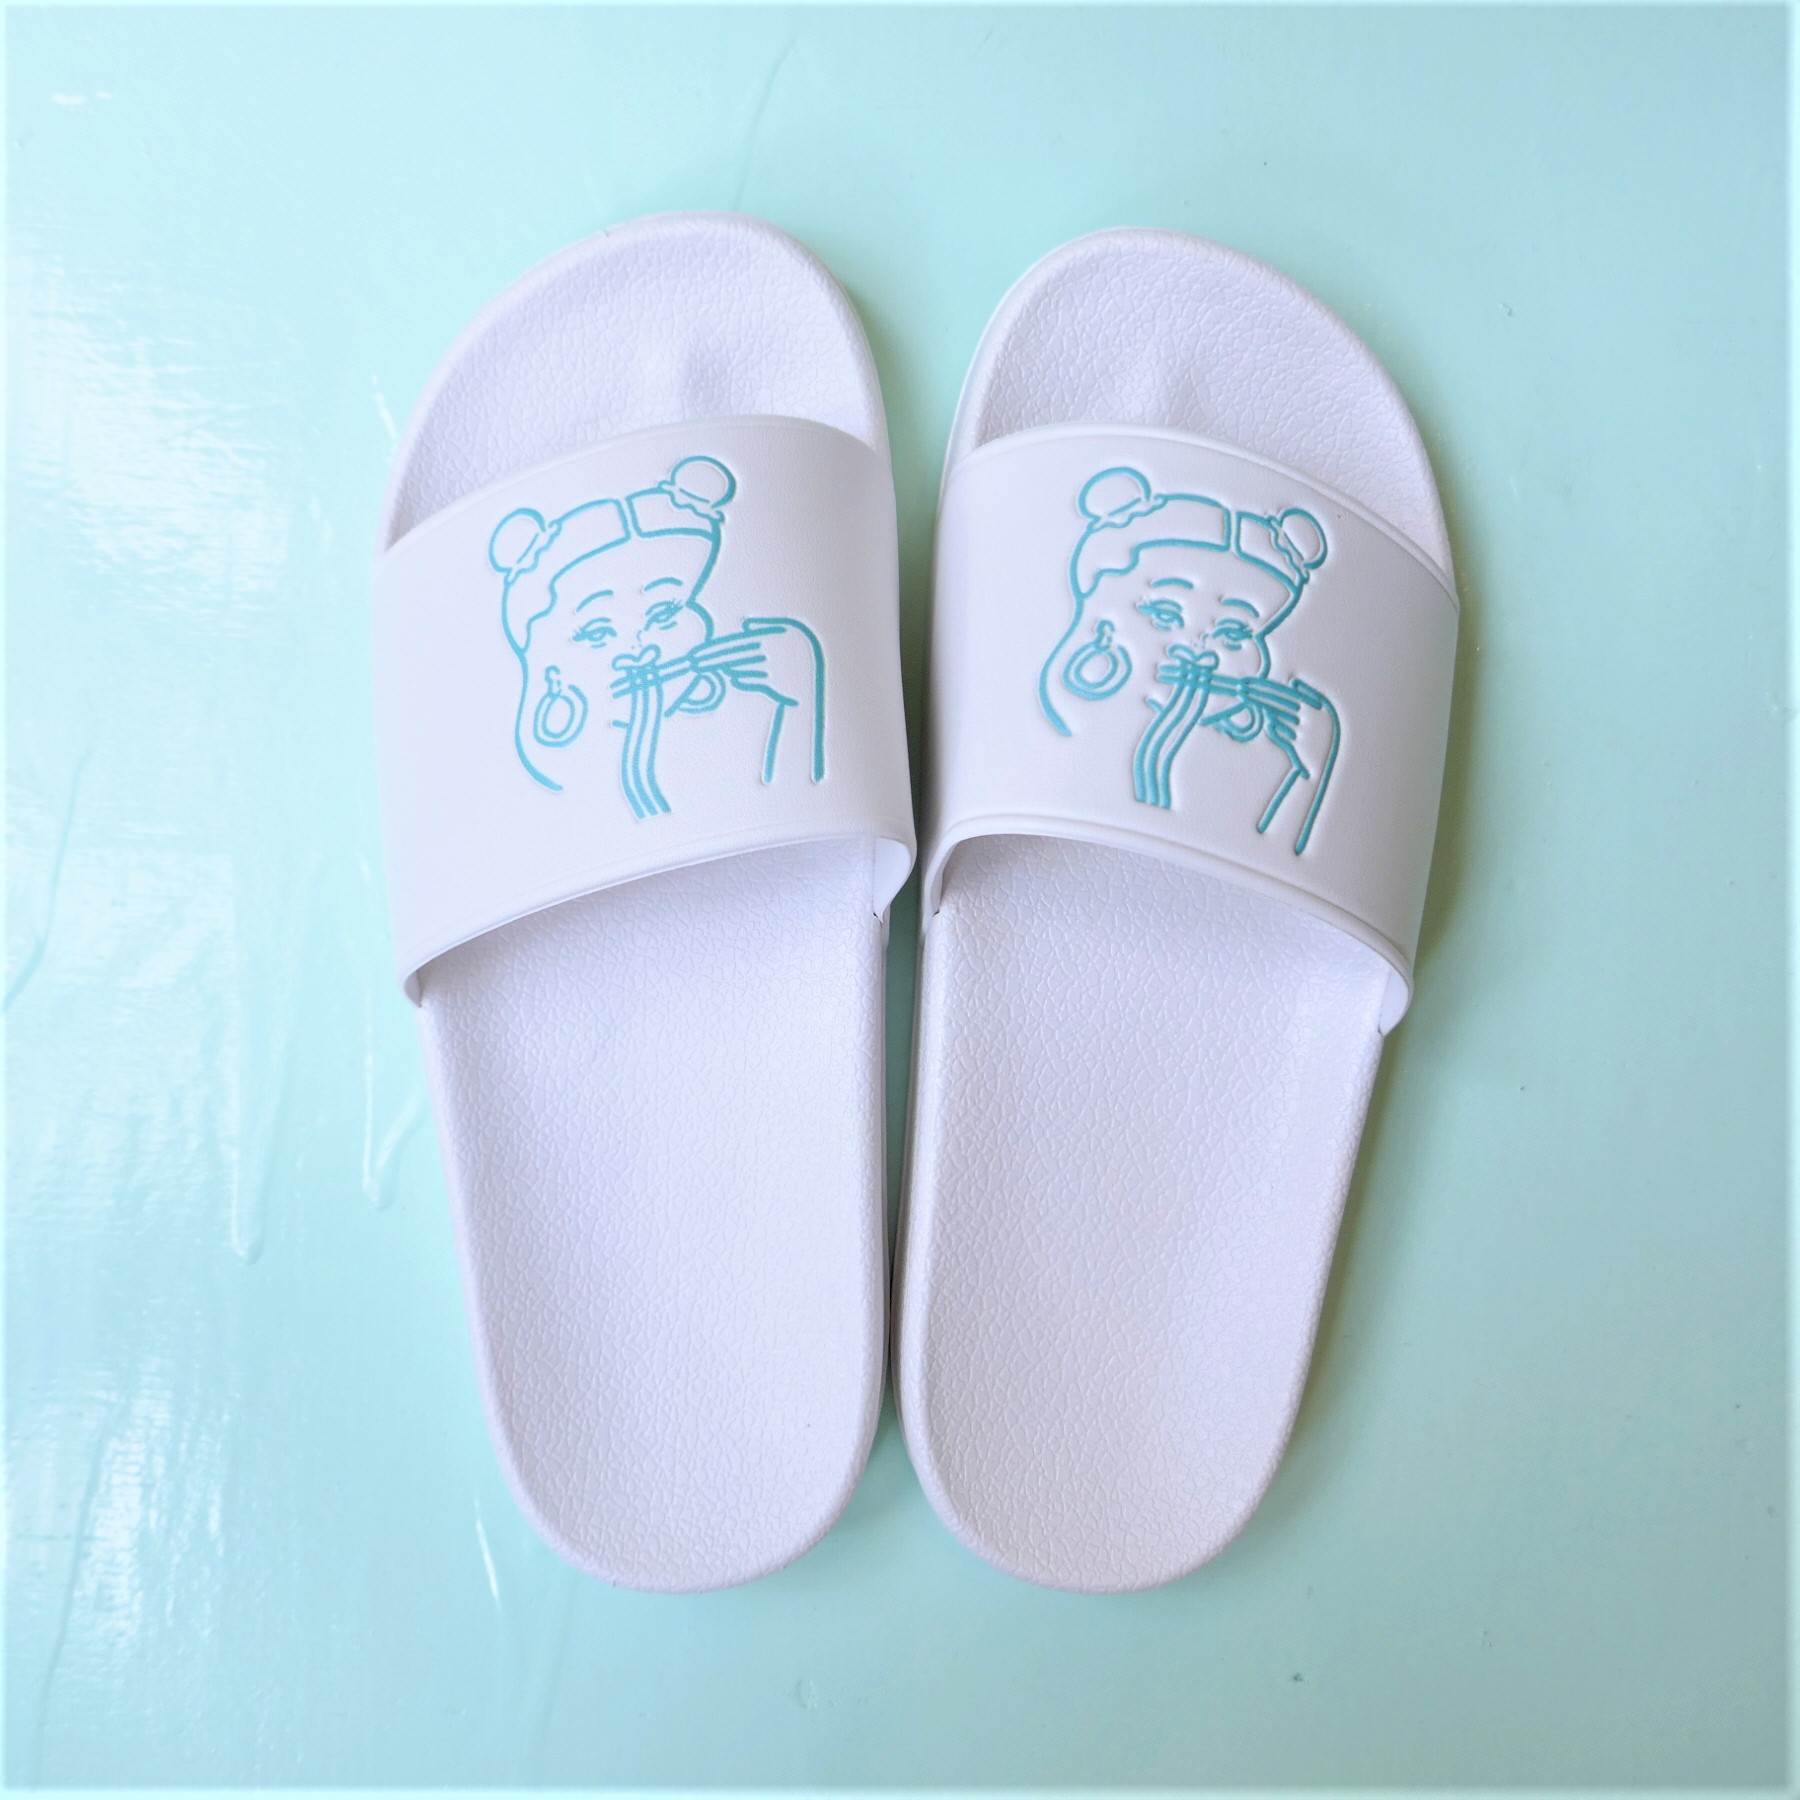 台風飯店 ORIGINAL LOGO SHOWER SANDAL MINT